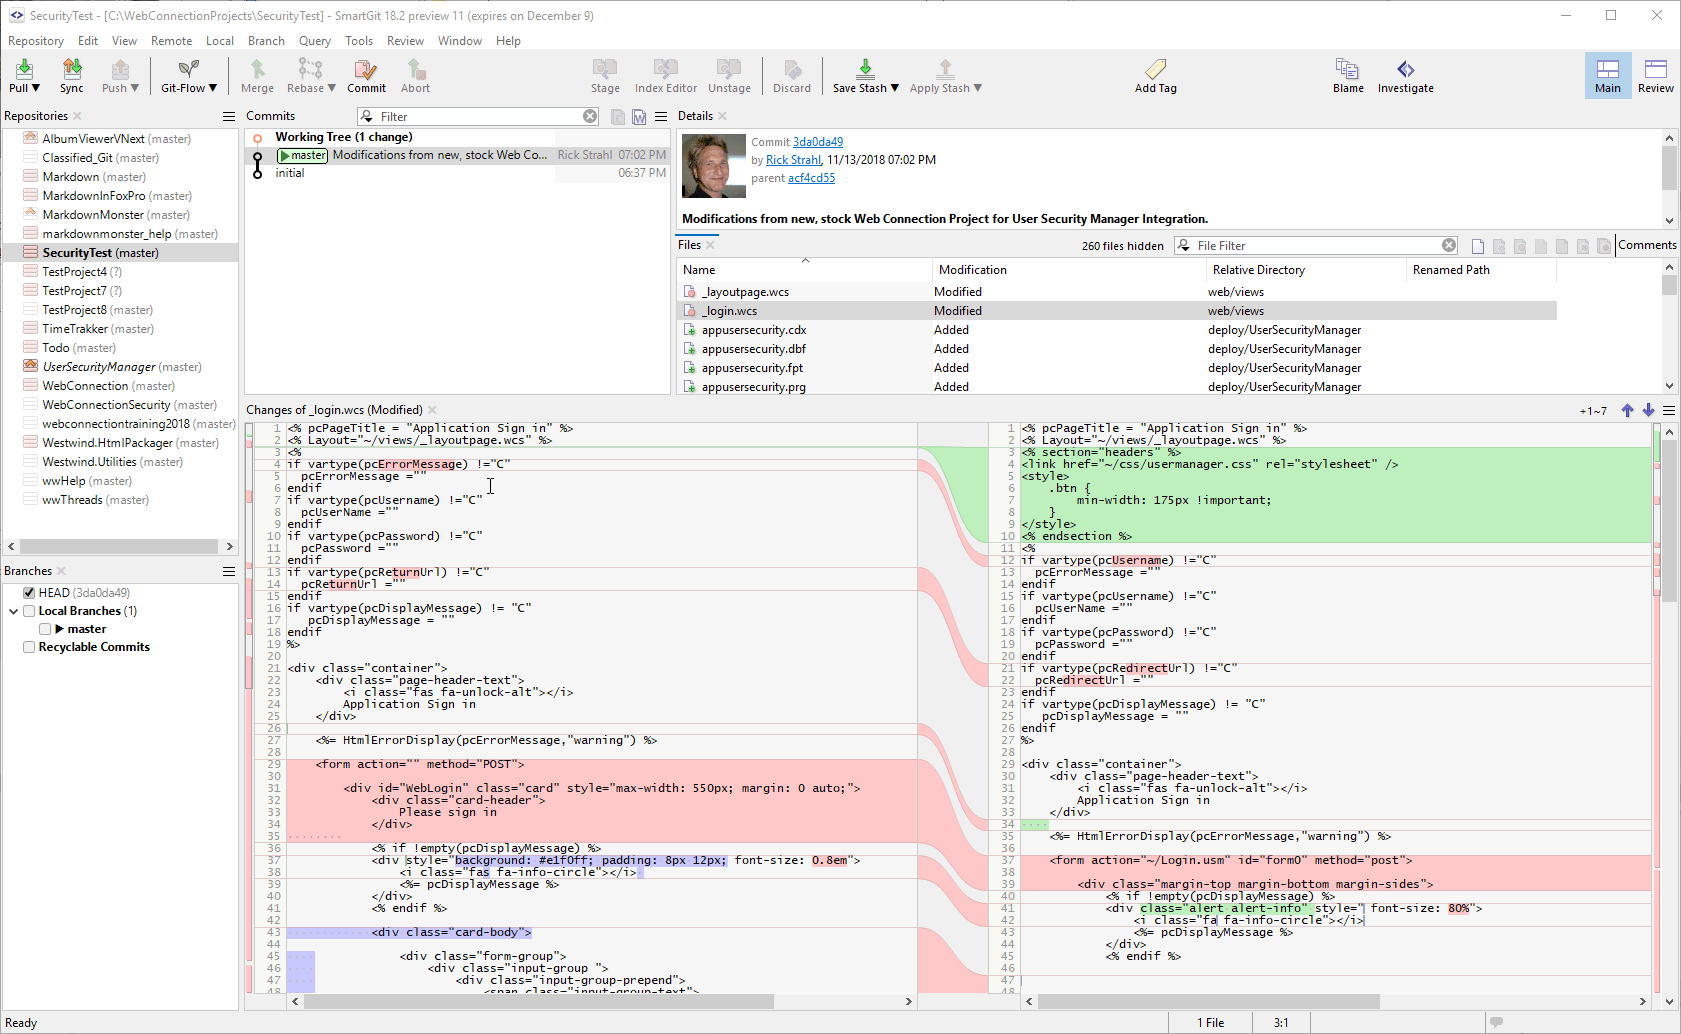 Seeing all the changes from a Stock Project with Git - Web